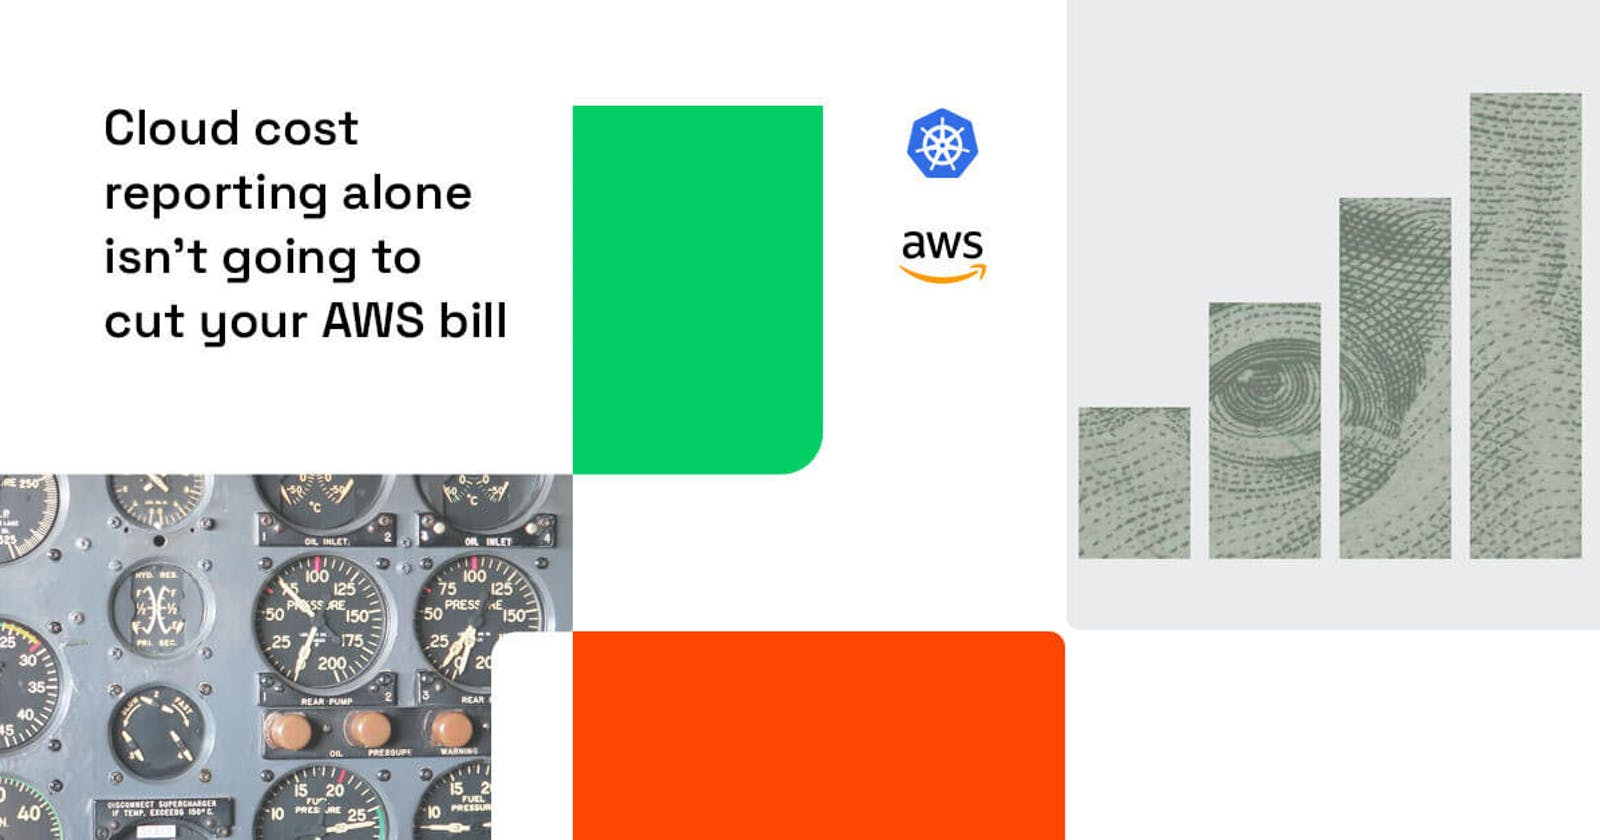 Cloud cost reporting alone isn't going to cut your AWS bill